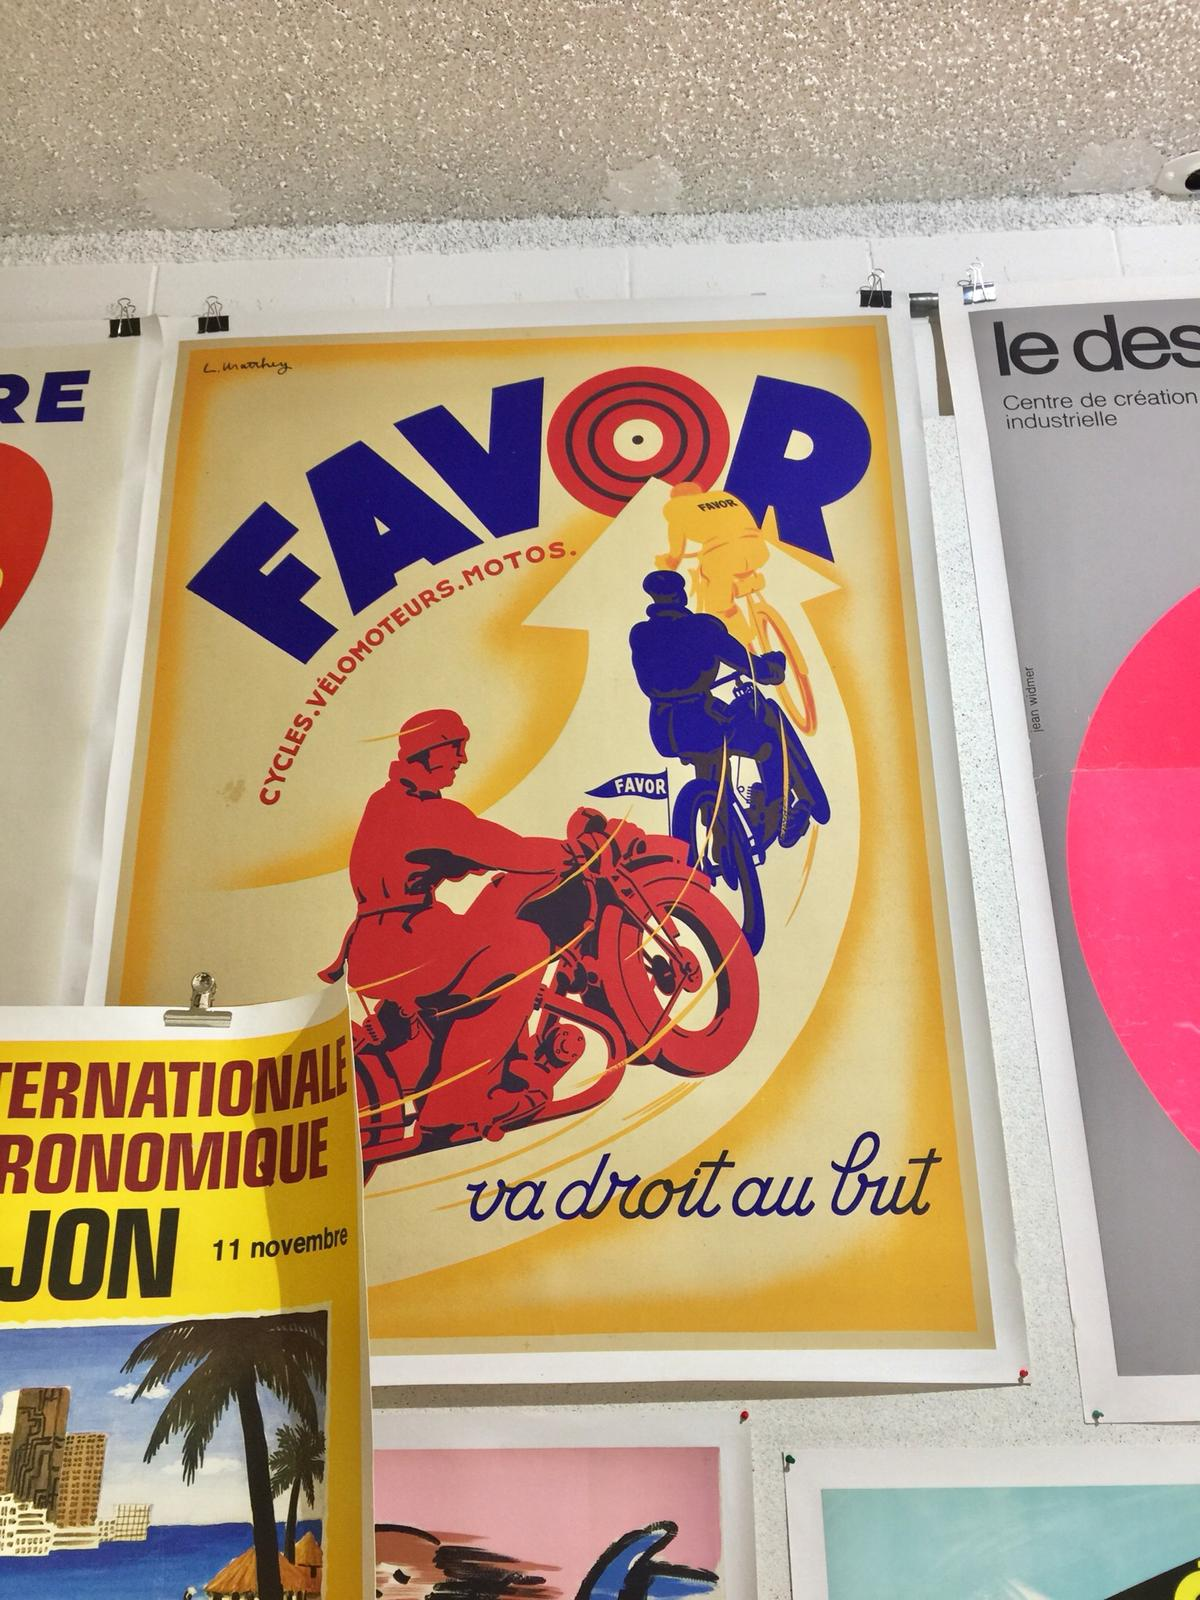 Favor Motorcycles & Cycles France To The Point